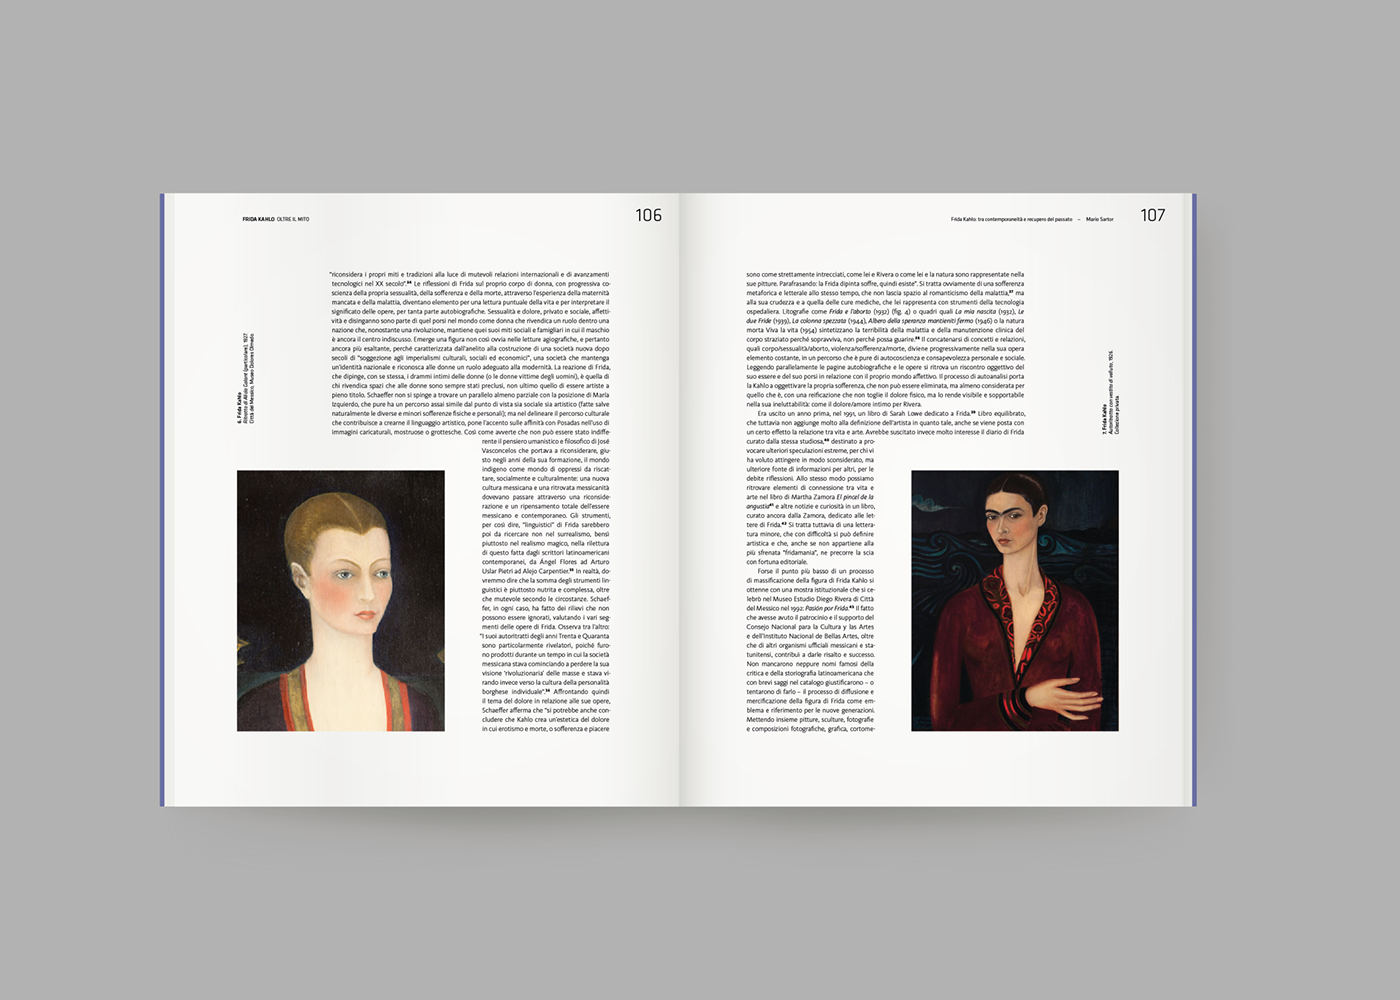 Frida Kahlo Oltre Il Mito On Behance 322 Thank You